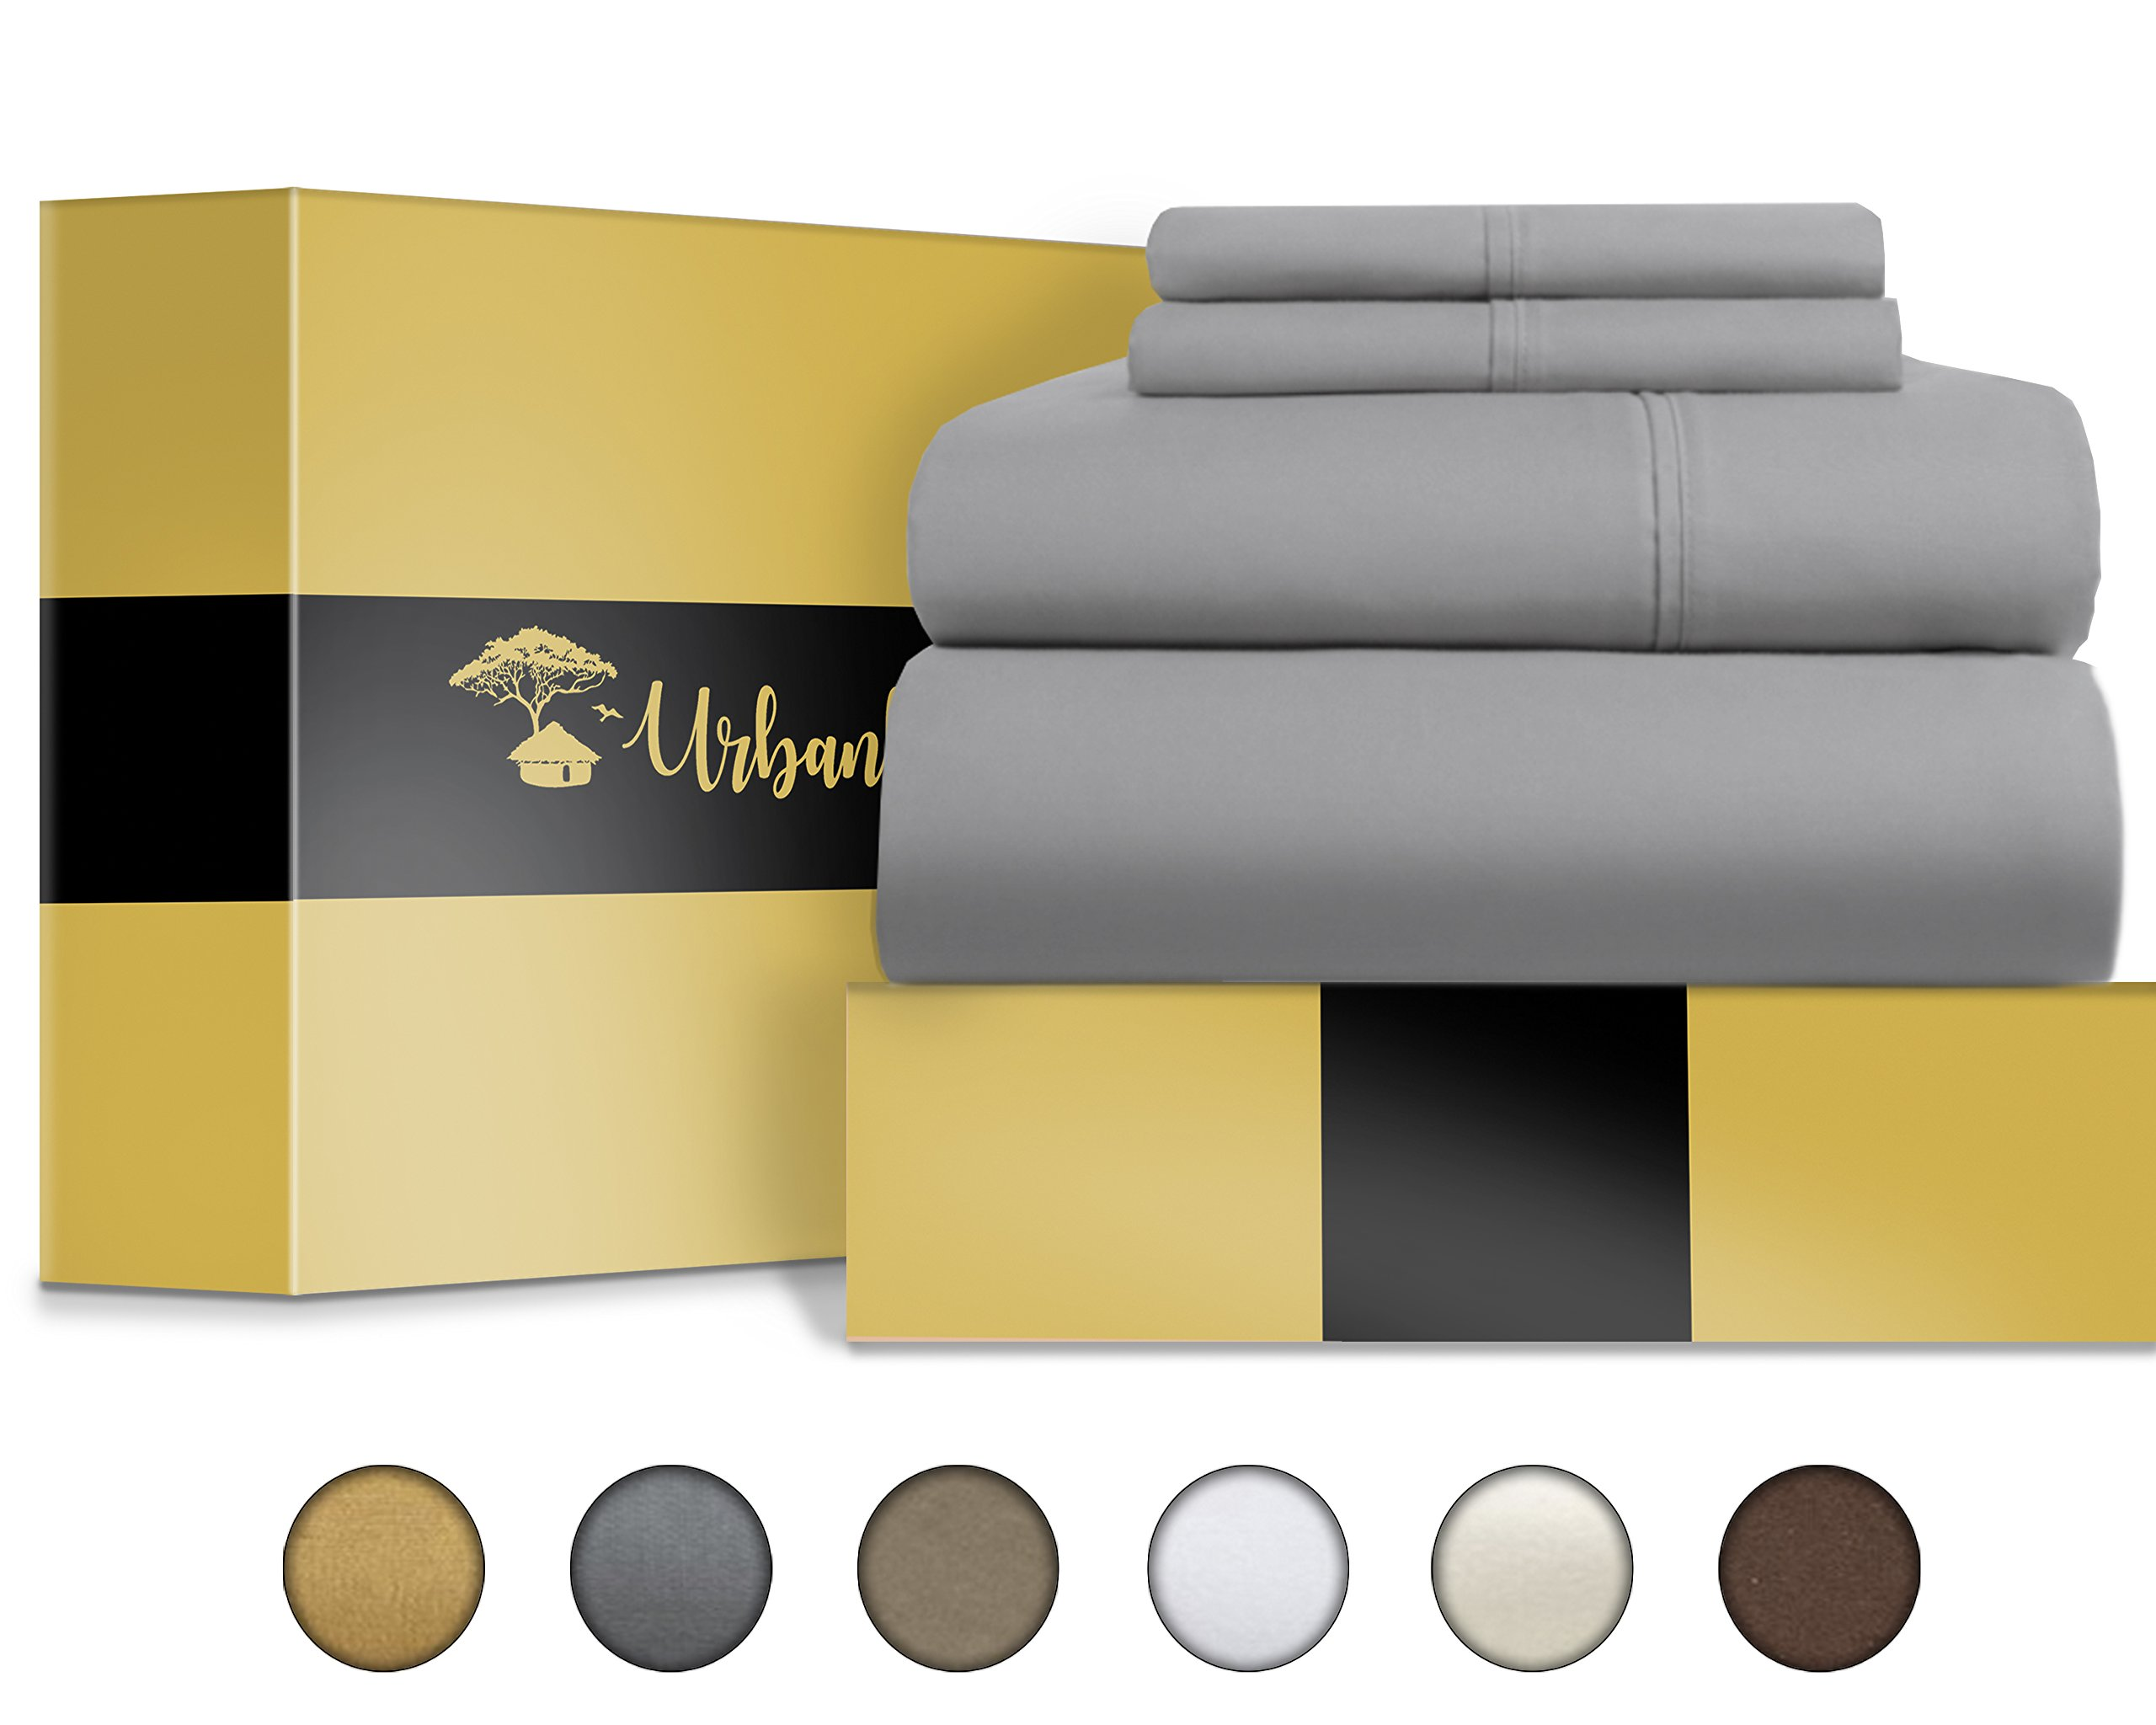 Urban Hut Egyptian Cotton Sheets Set (4 Piece) 800 Thread Count - Bedspread Deep Pocket Premium Bedding Set, Luxury Bed Sheets for Hotel Collection Soft Sateen Weave (California King, Silver Grey) by URBANHUT (Image #6)